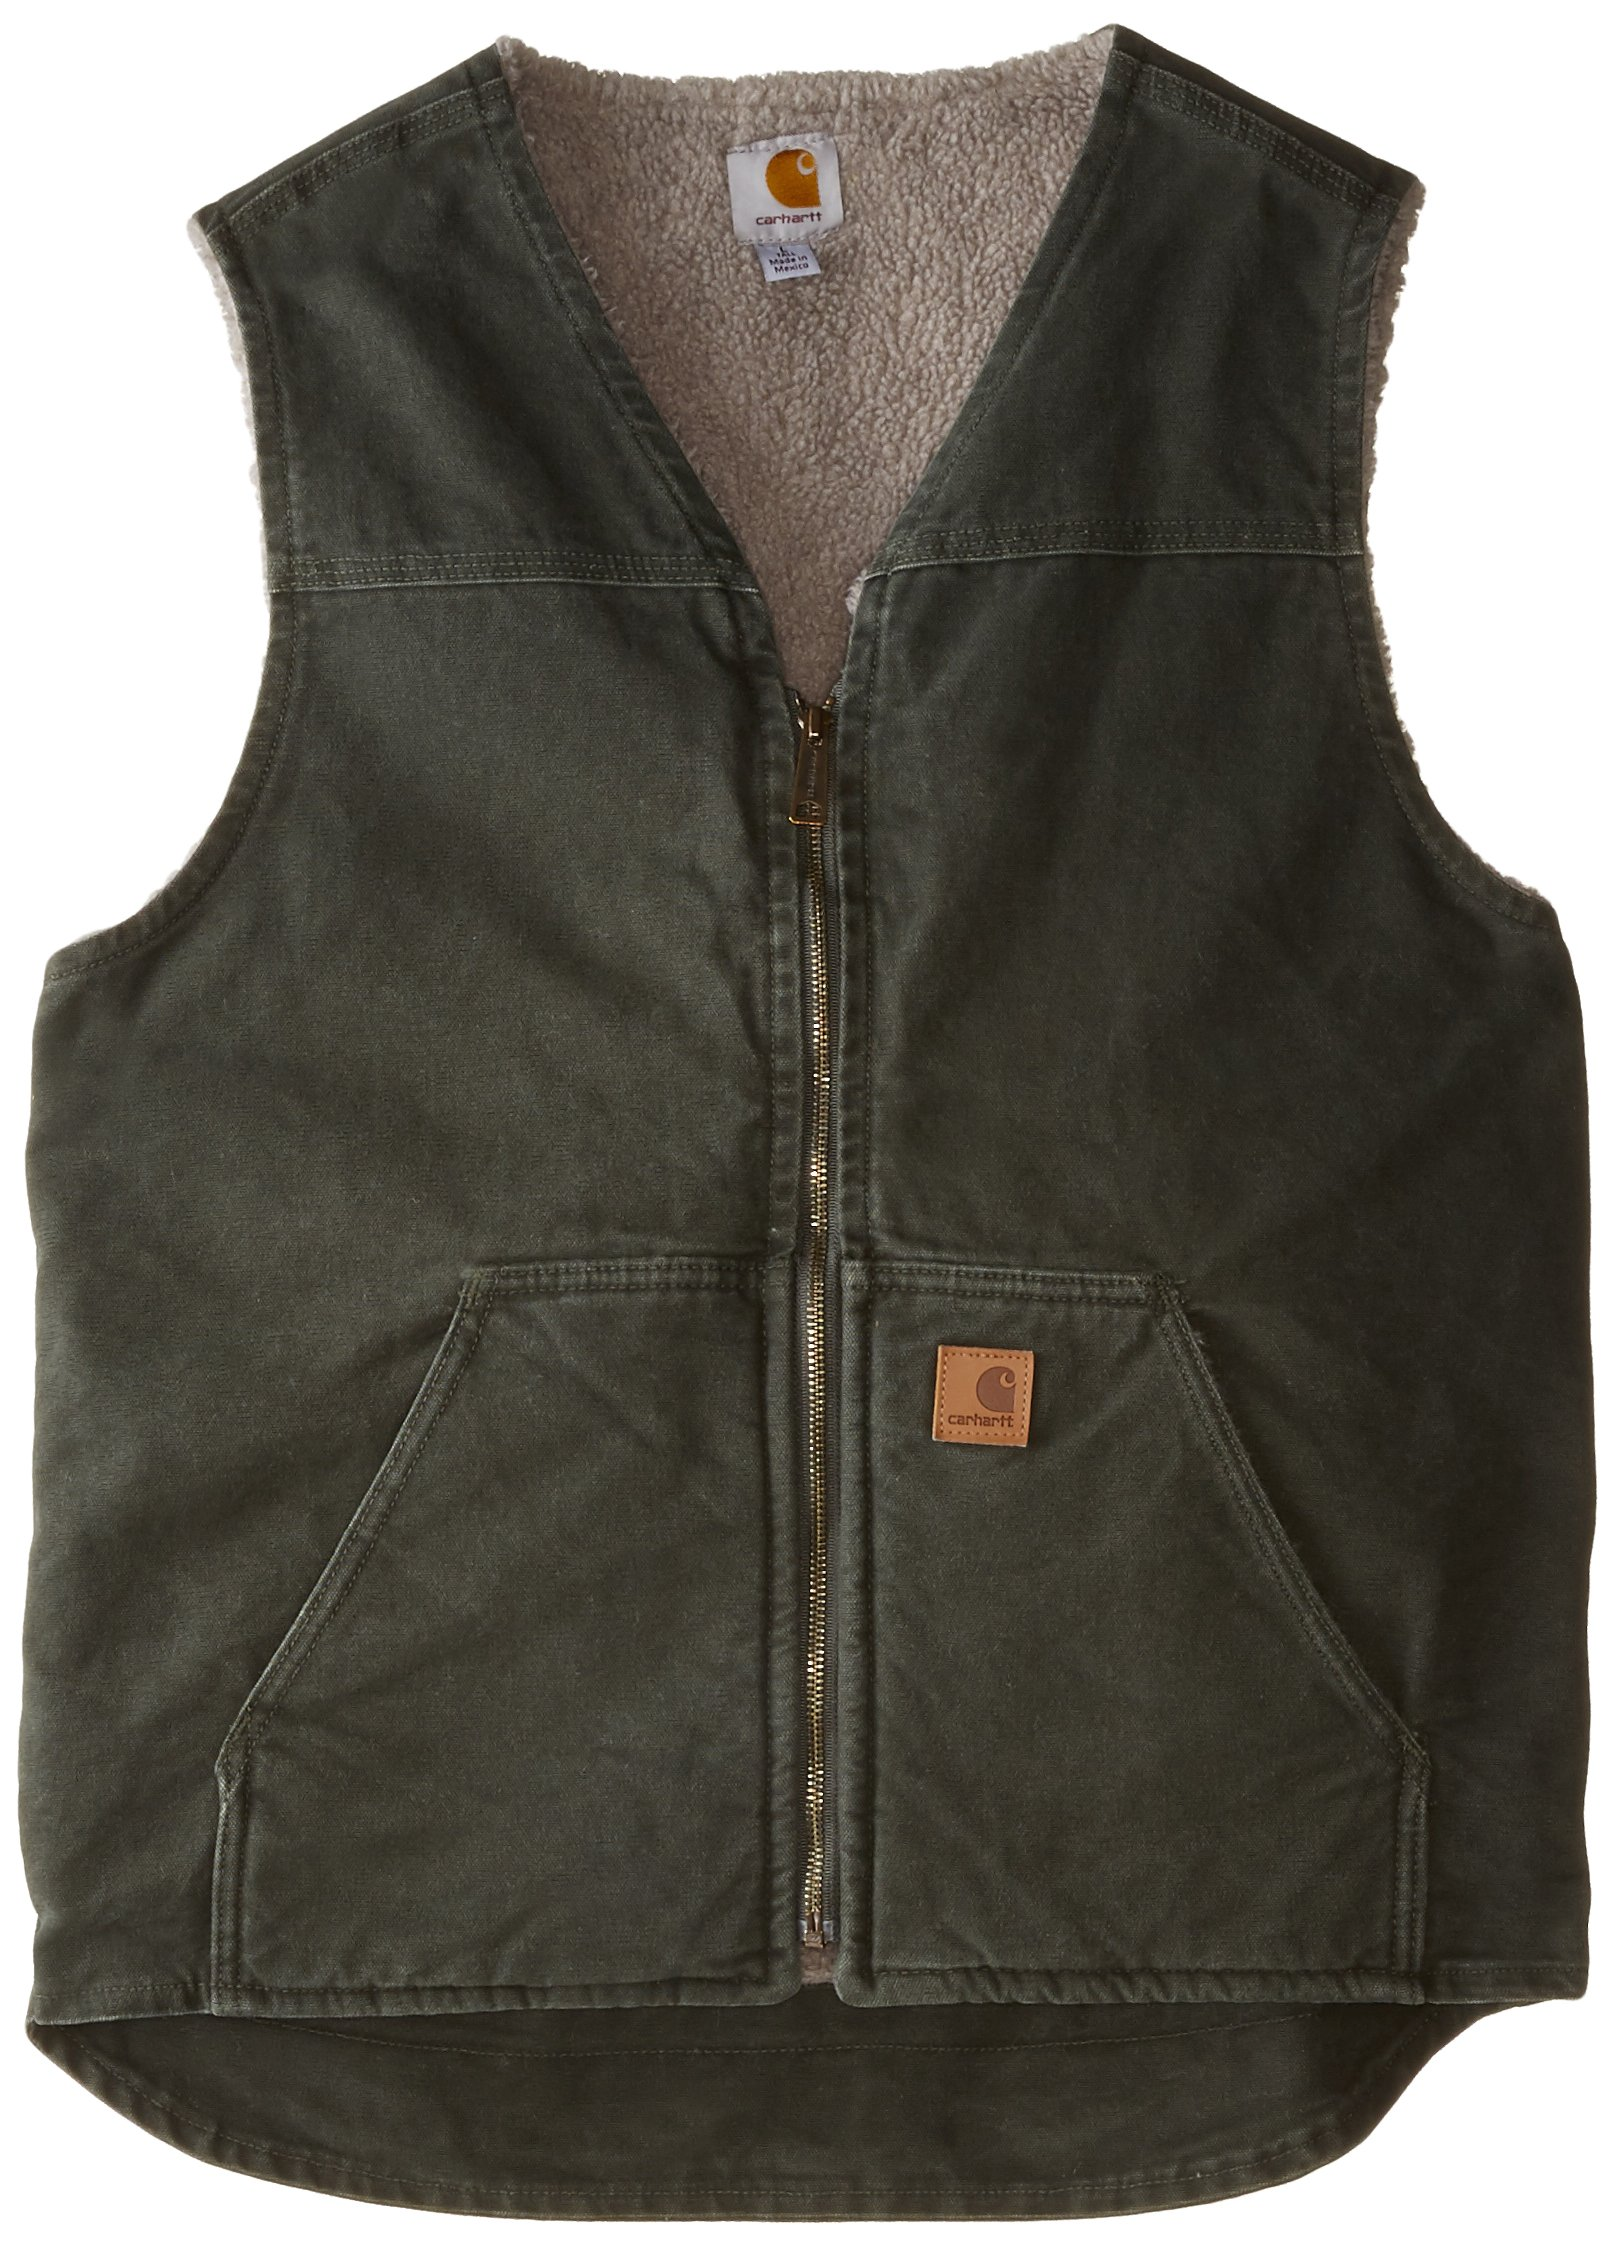 Carhartt Men's Big & Tall  Sherpa Lined Sandstone Rugged Vest V26,Moss,4X-Large by Carhartt